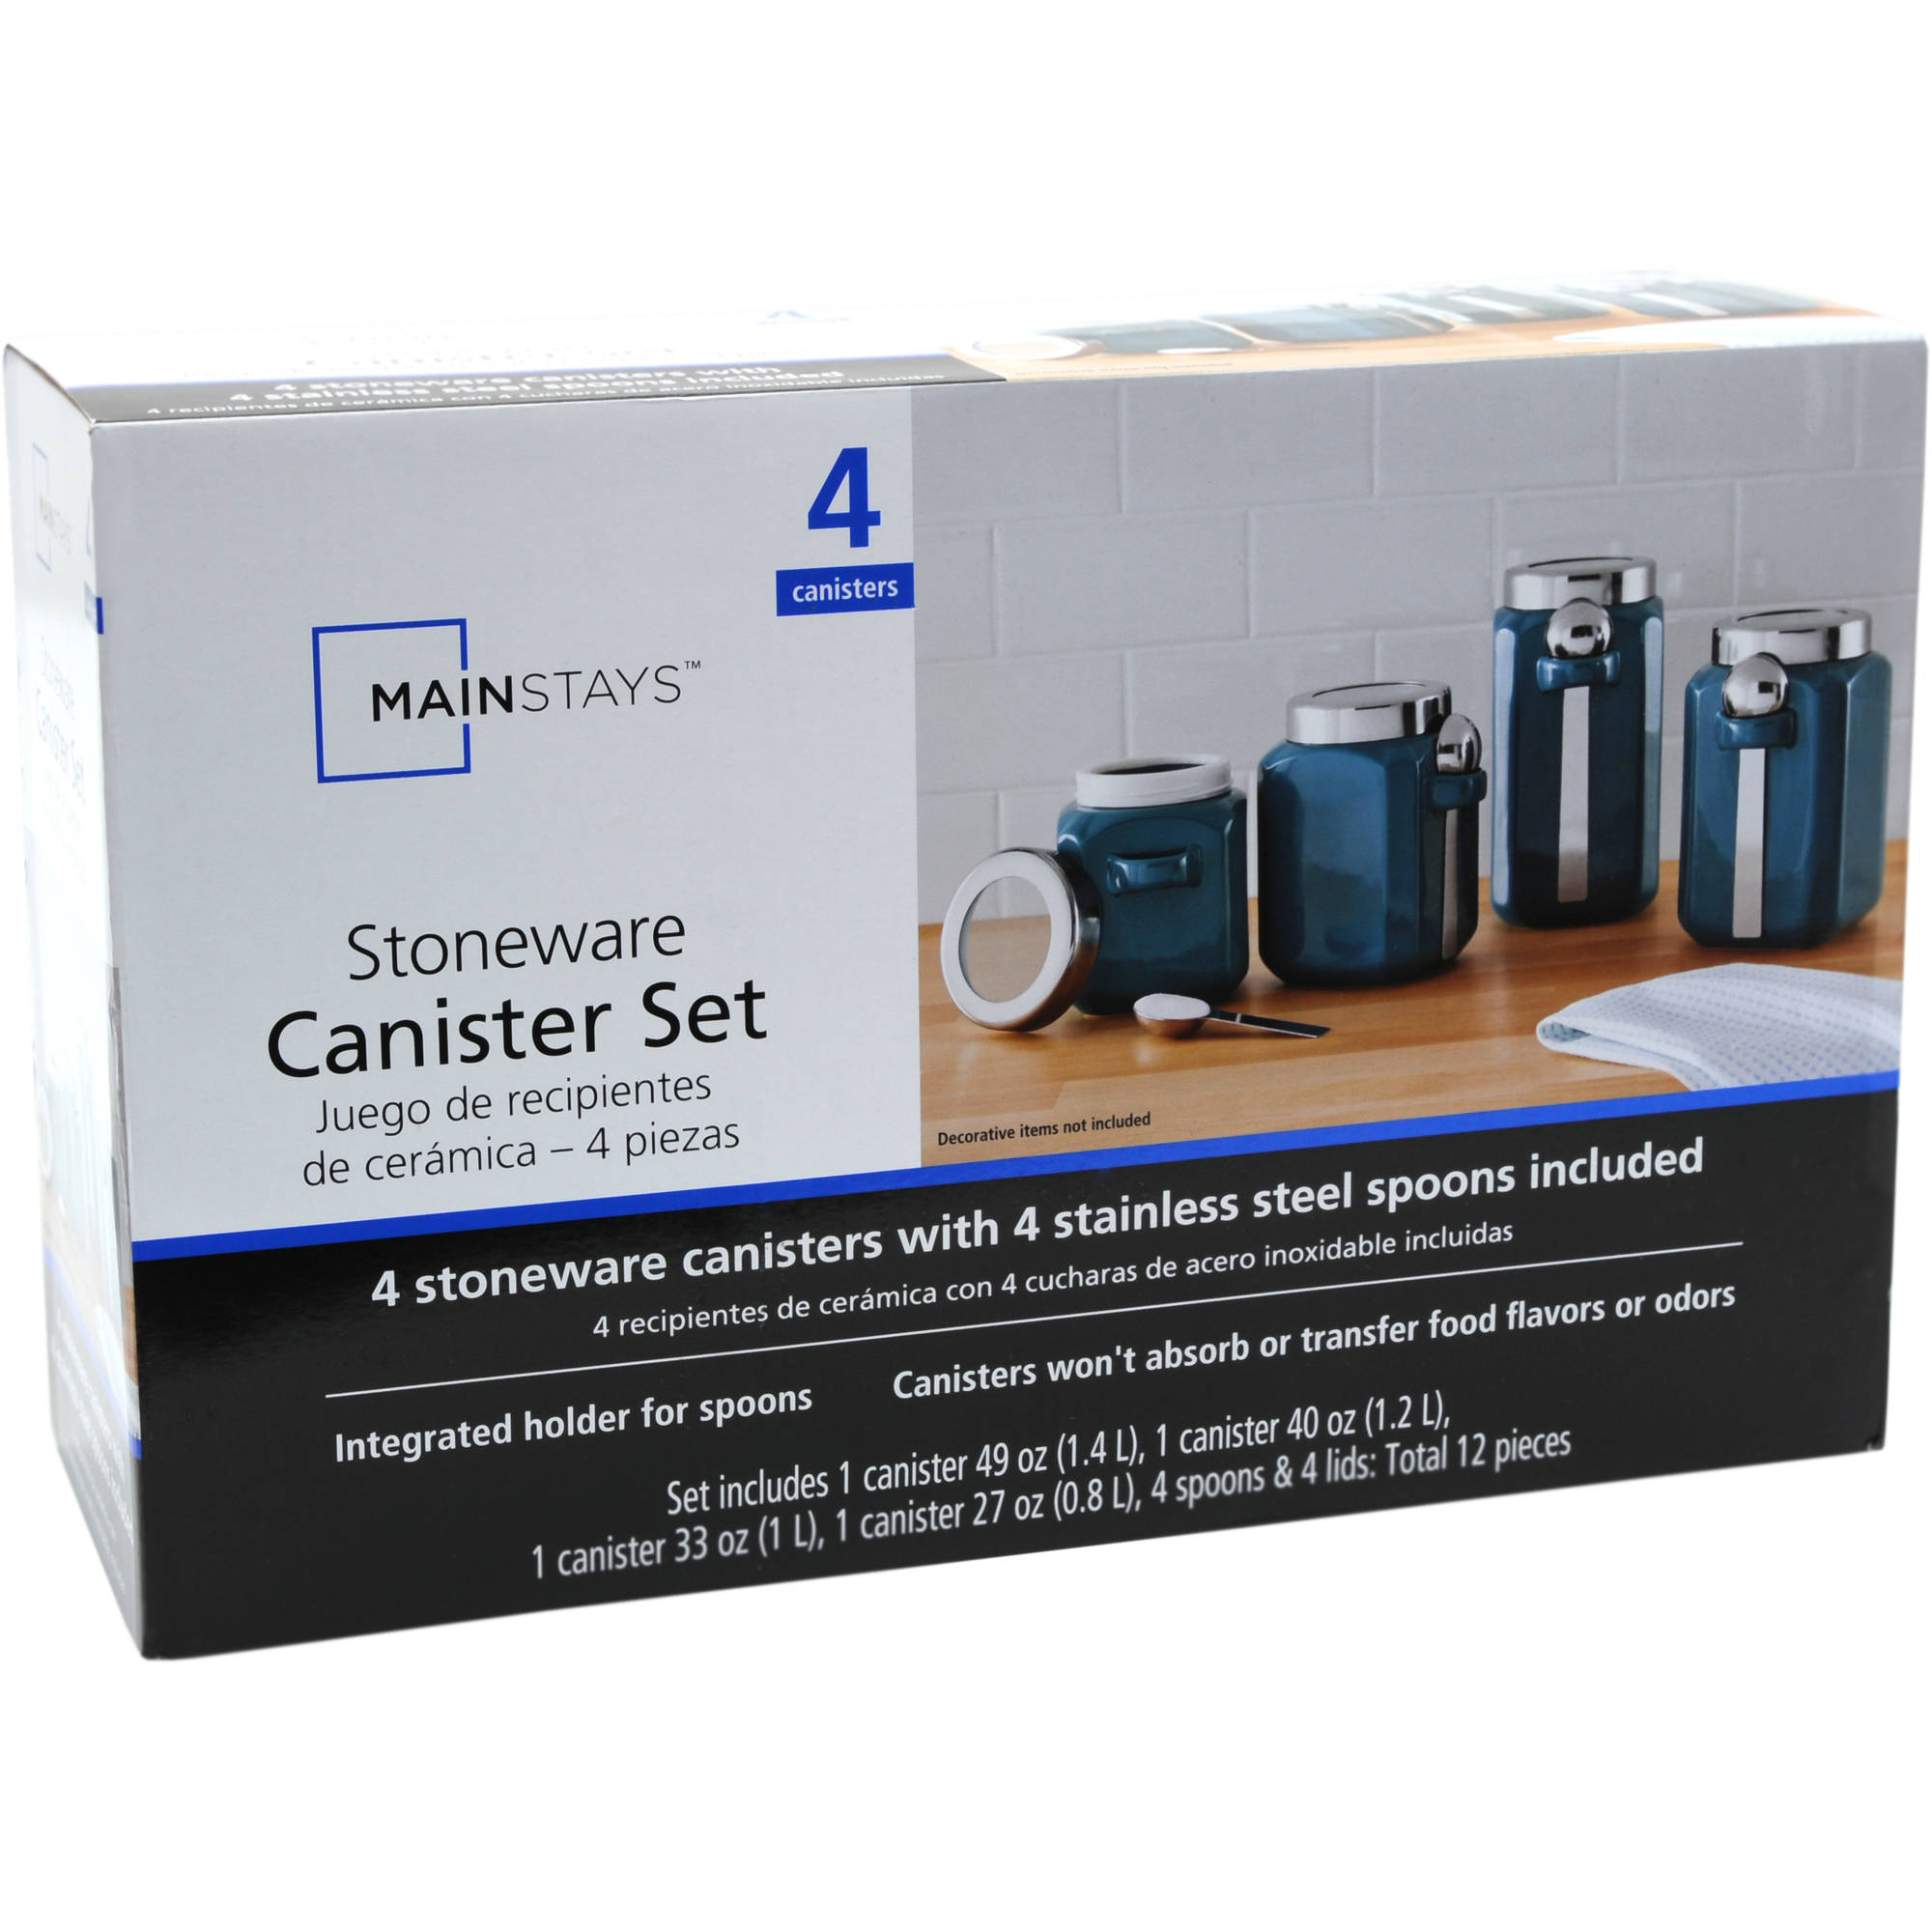 mainstays pantry durable ceramic for daily use contemporary mainstays pantry durable ceramic for daily use contemporary design and color 4pc canister set 4 pack walmart com